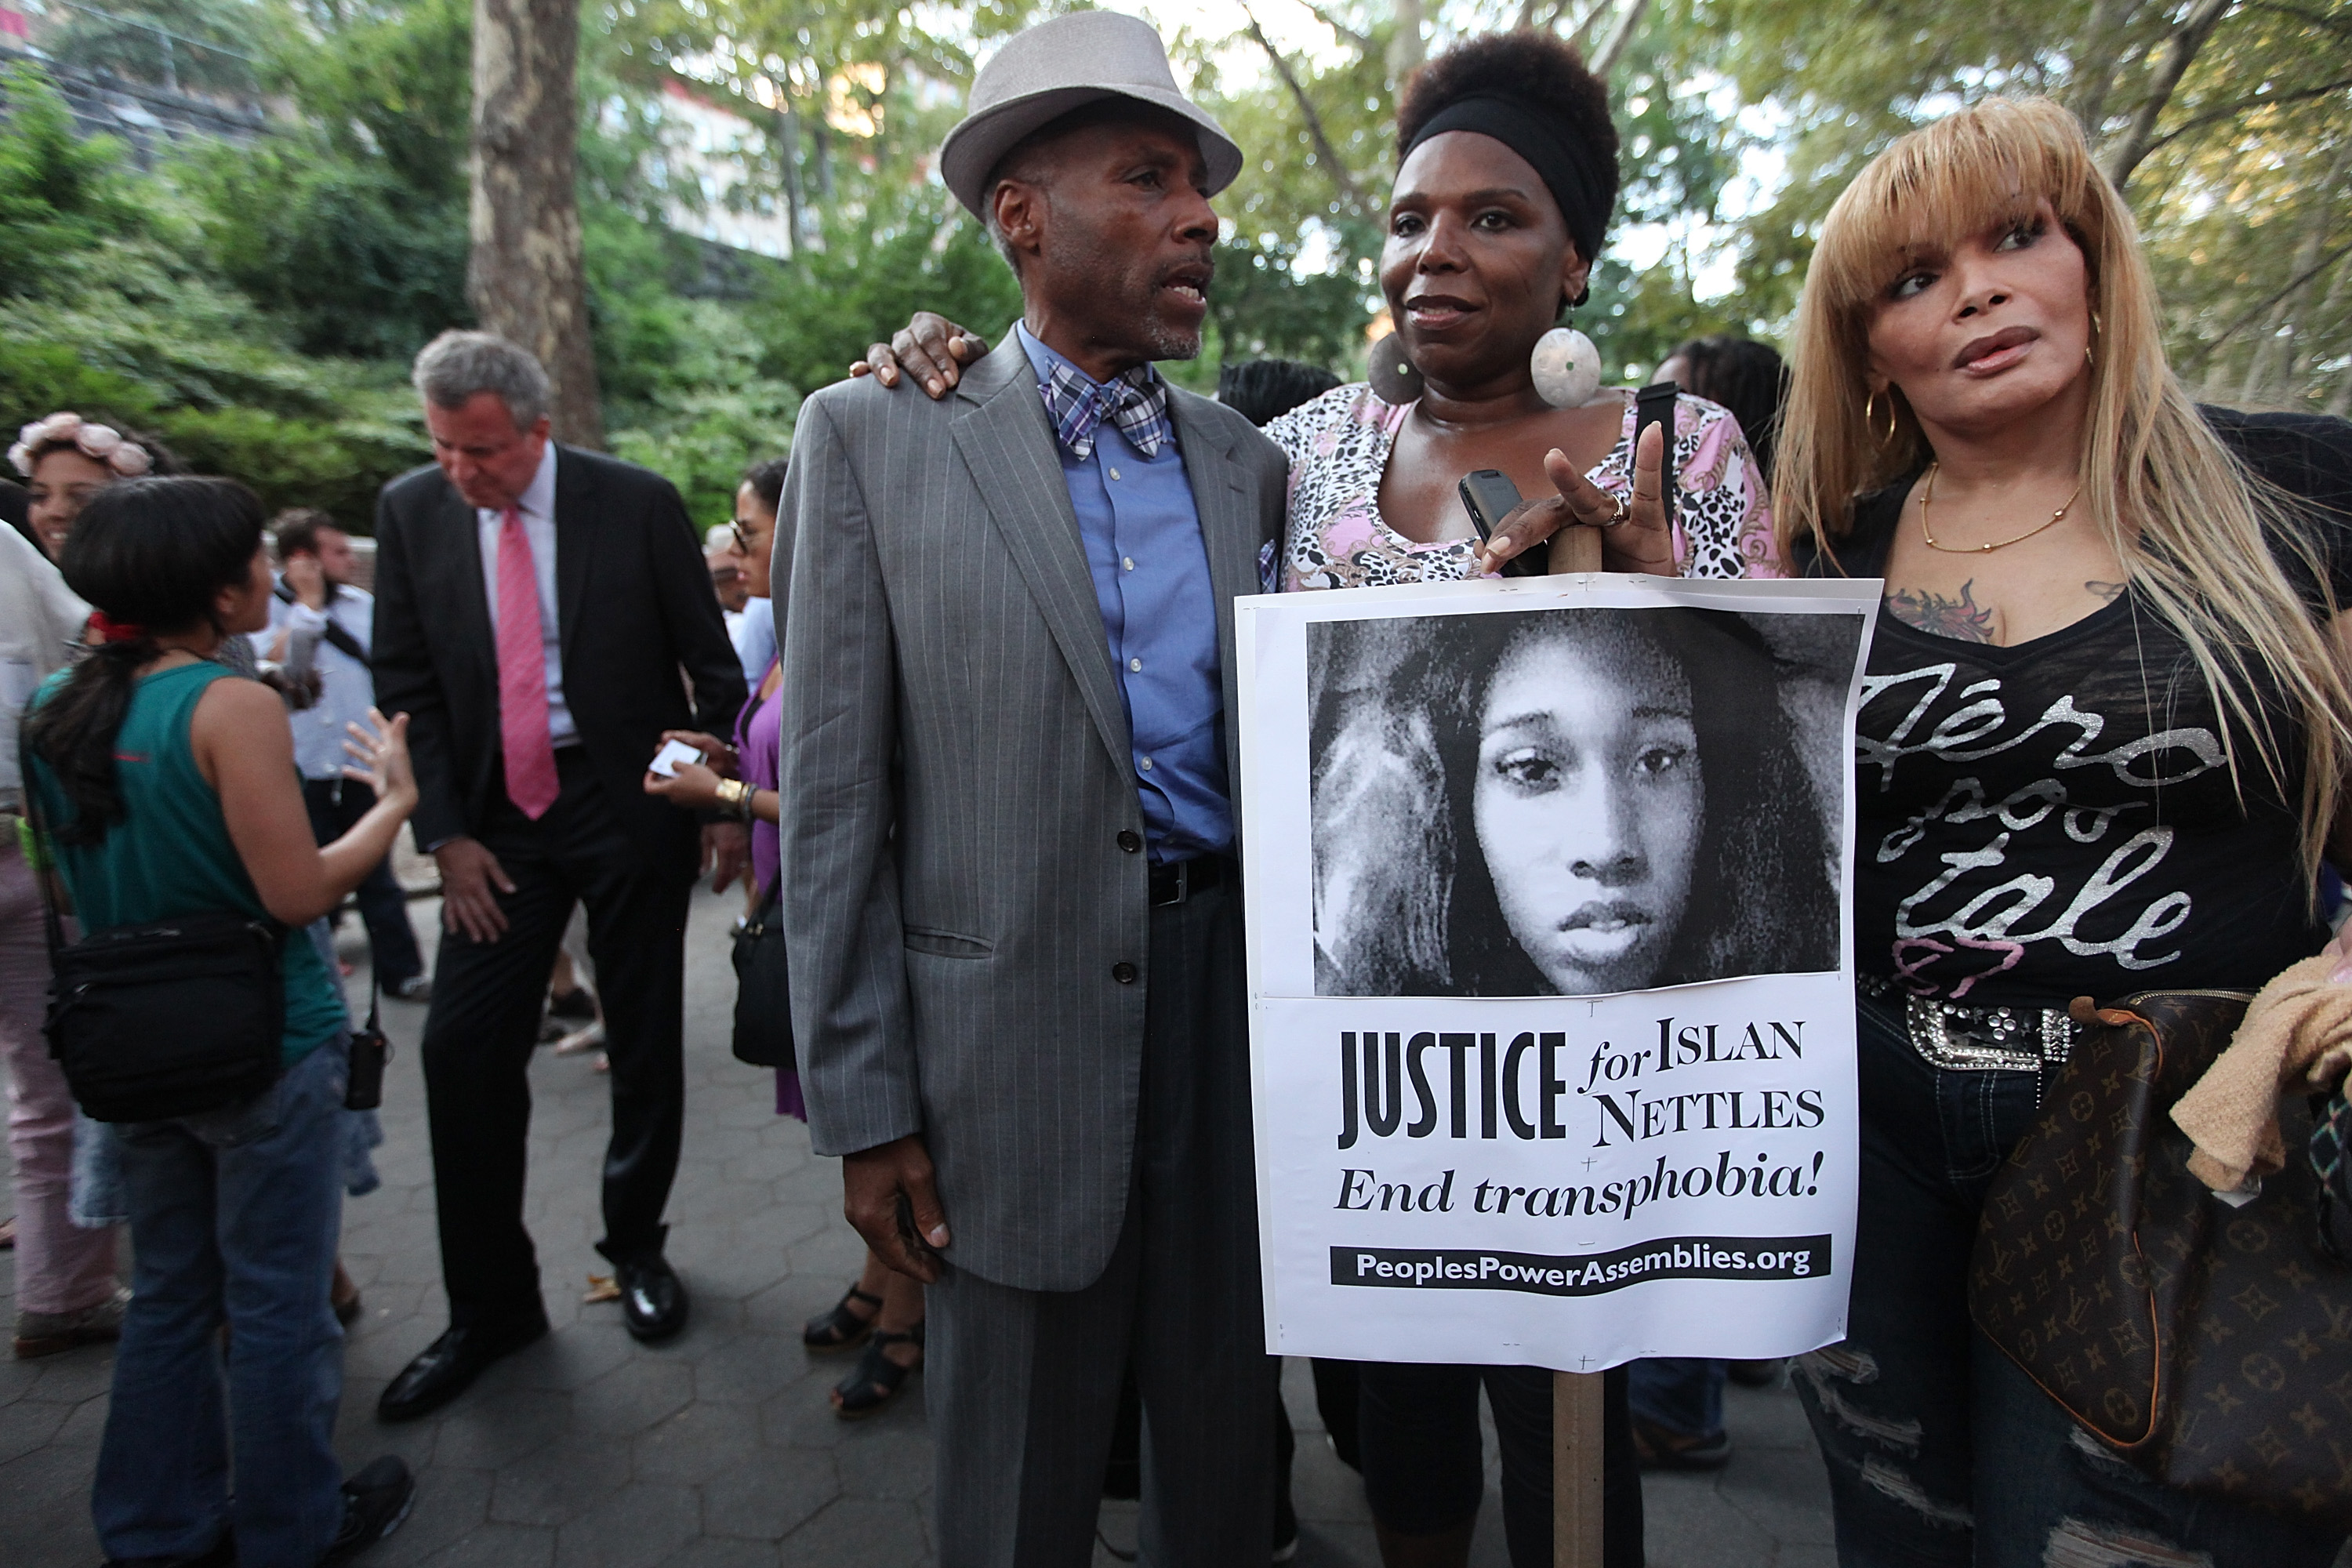 NEW YORK, NY - AUGUST 27:  People gather along with Democratic mayoral candidate Bill de Blasio (back, L) before a vigil for slain transgender woman Islan Nettles at Jackie Robinson Park in Harlem on August 27, 2013 in New York City. Nettles was severely beaten two weeks ago after being approached on the street by a group of men and later died of her injuries.  (Photo by Mario Tama/Getty Images)